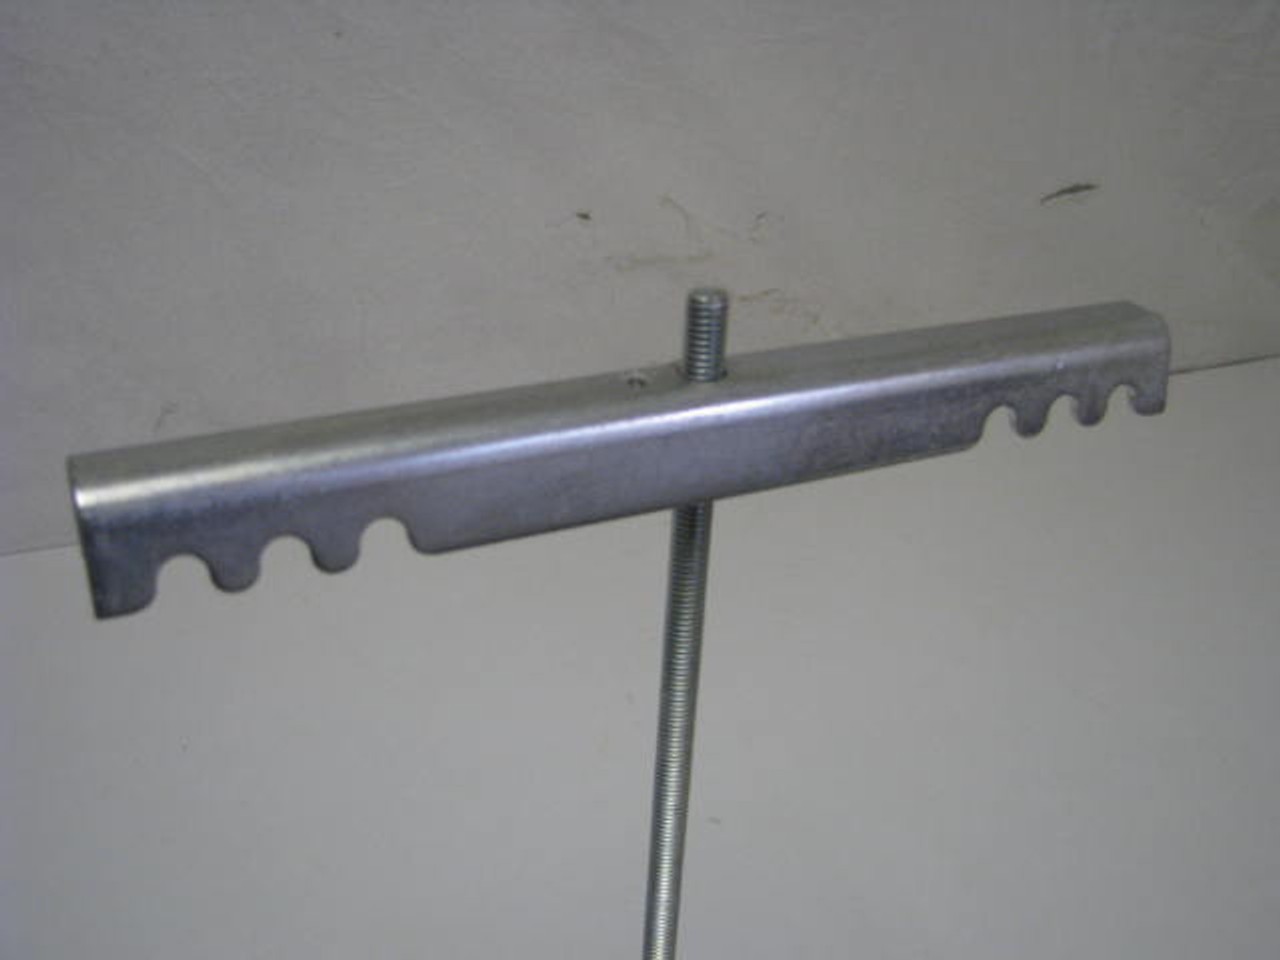 DUAL TANK BRACKET ONLY (06-1006) PICTURED ON ROD (NOT INCLUDED)